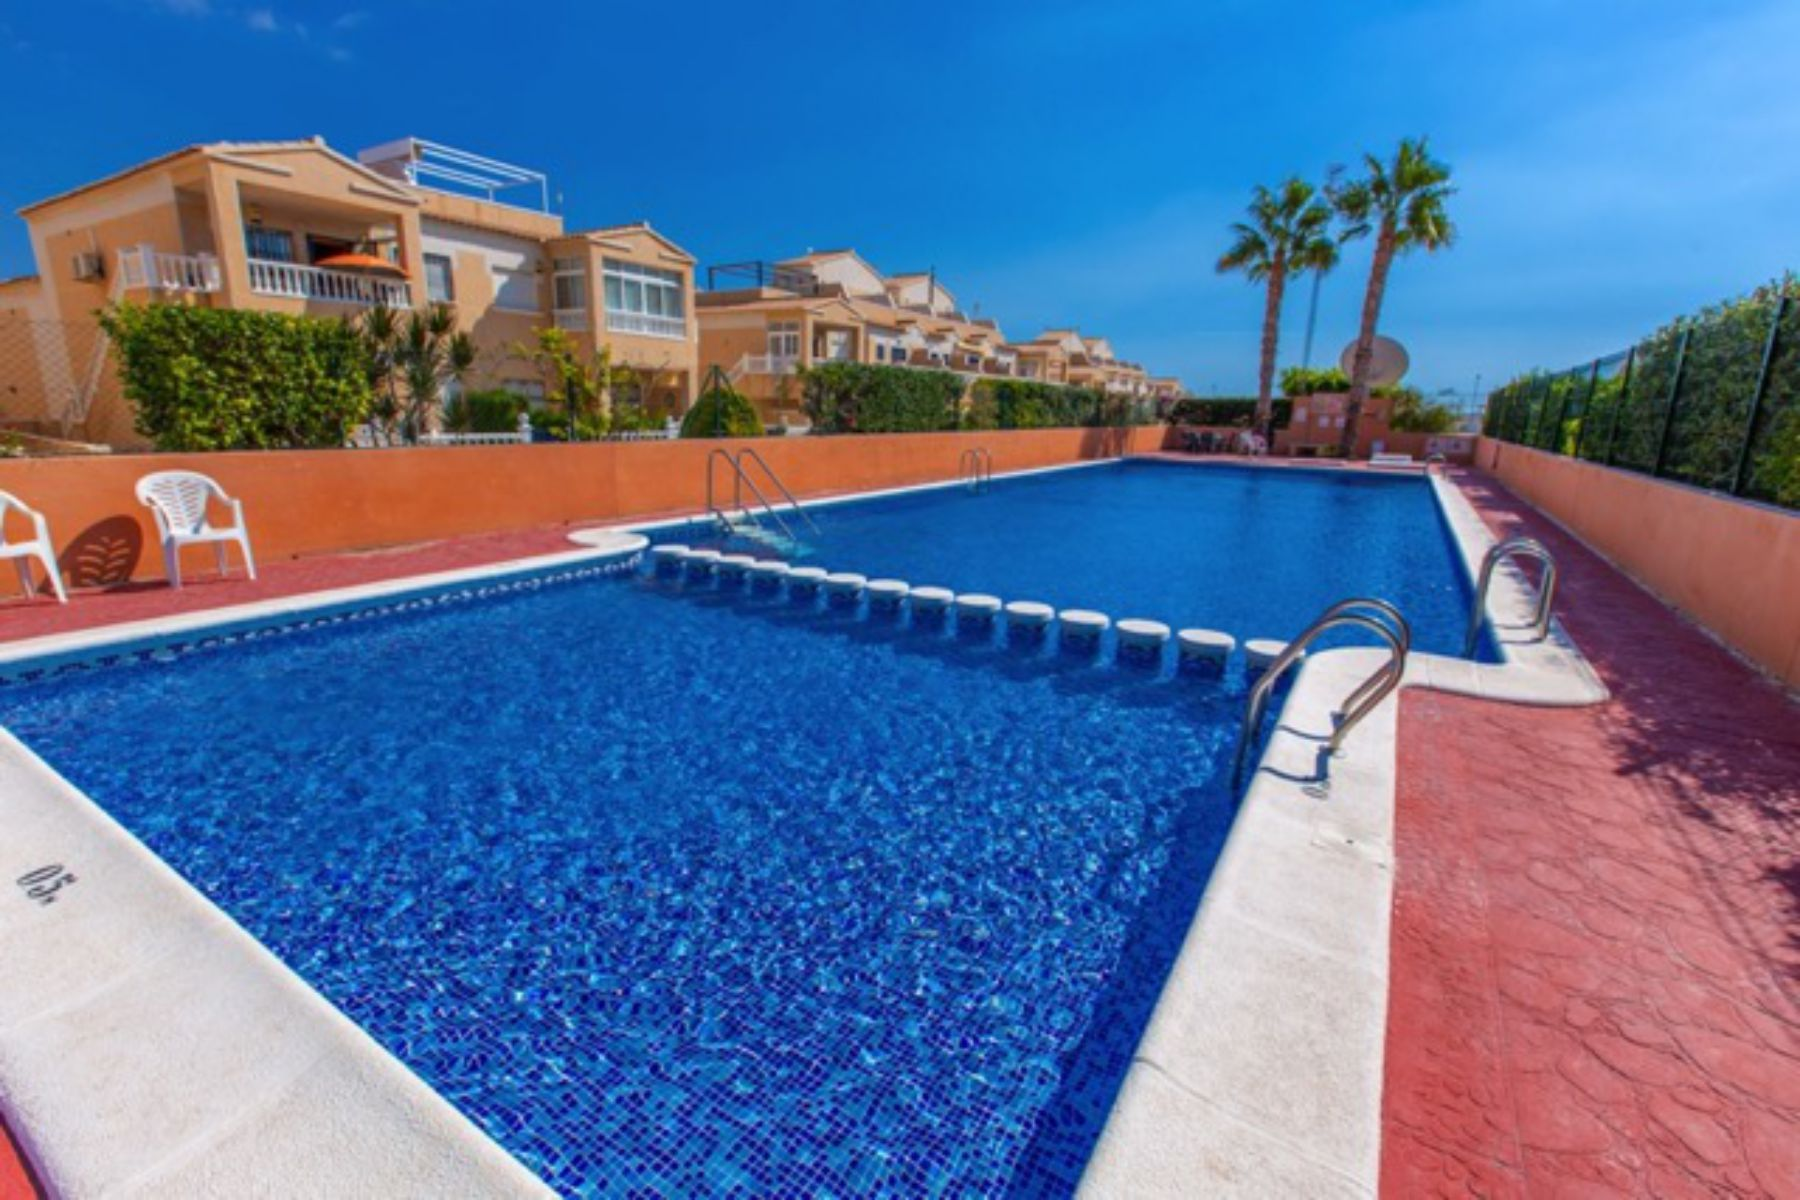 2 Bedrooms Townhouse For Sale in Punta Prima Torrevieja